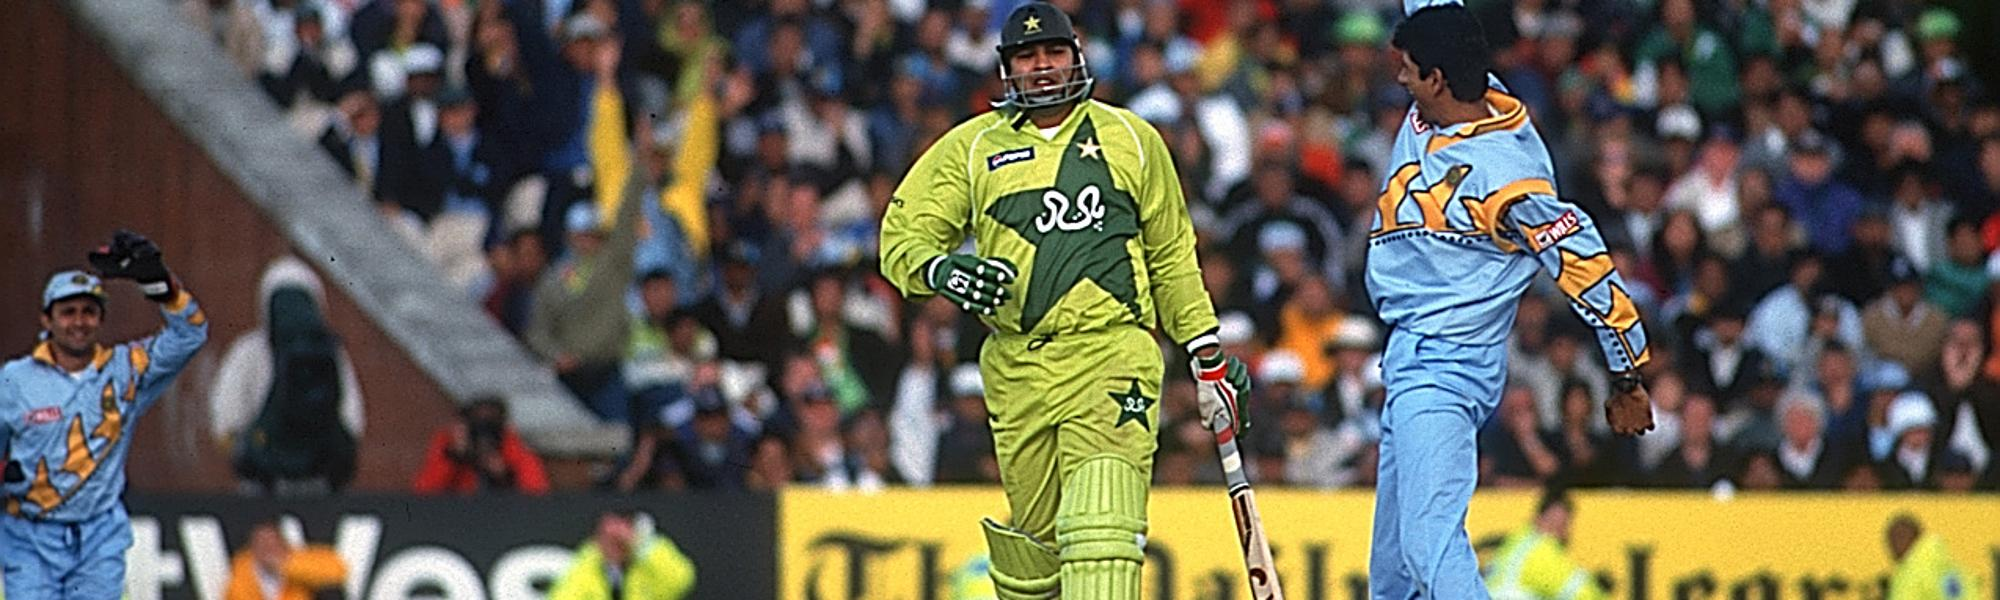 World Cup Memories Old Trafford In 1999